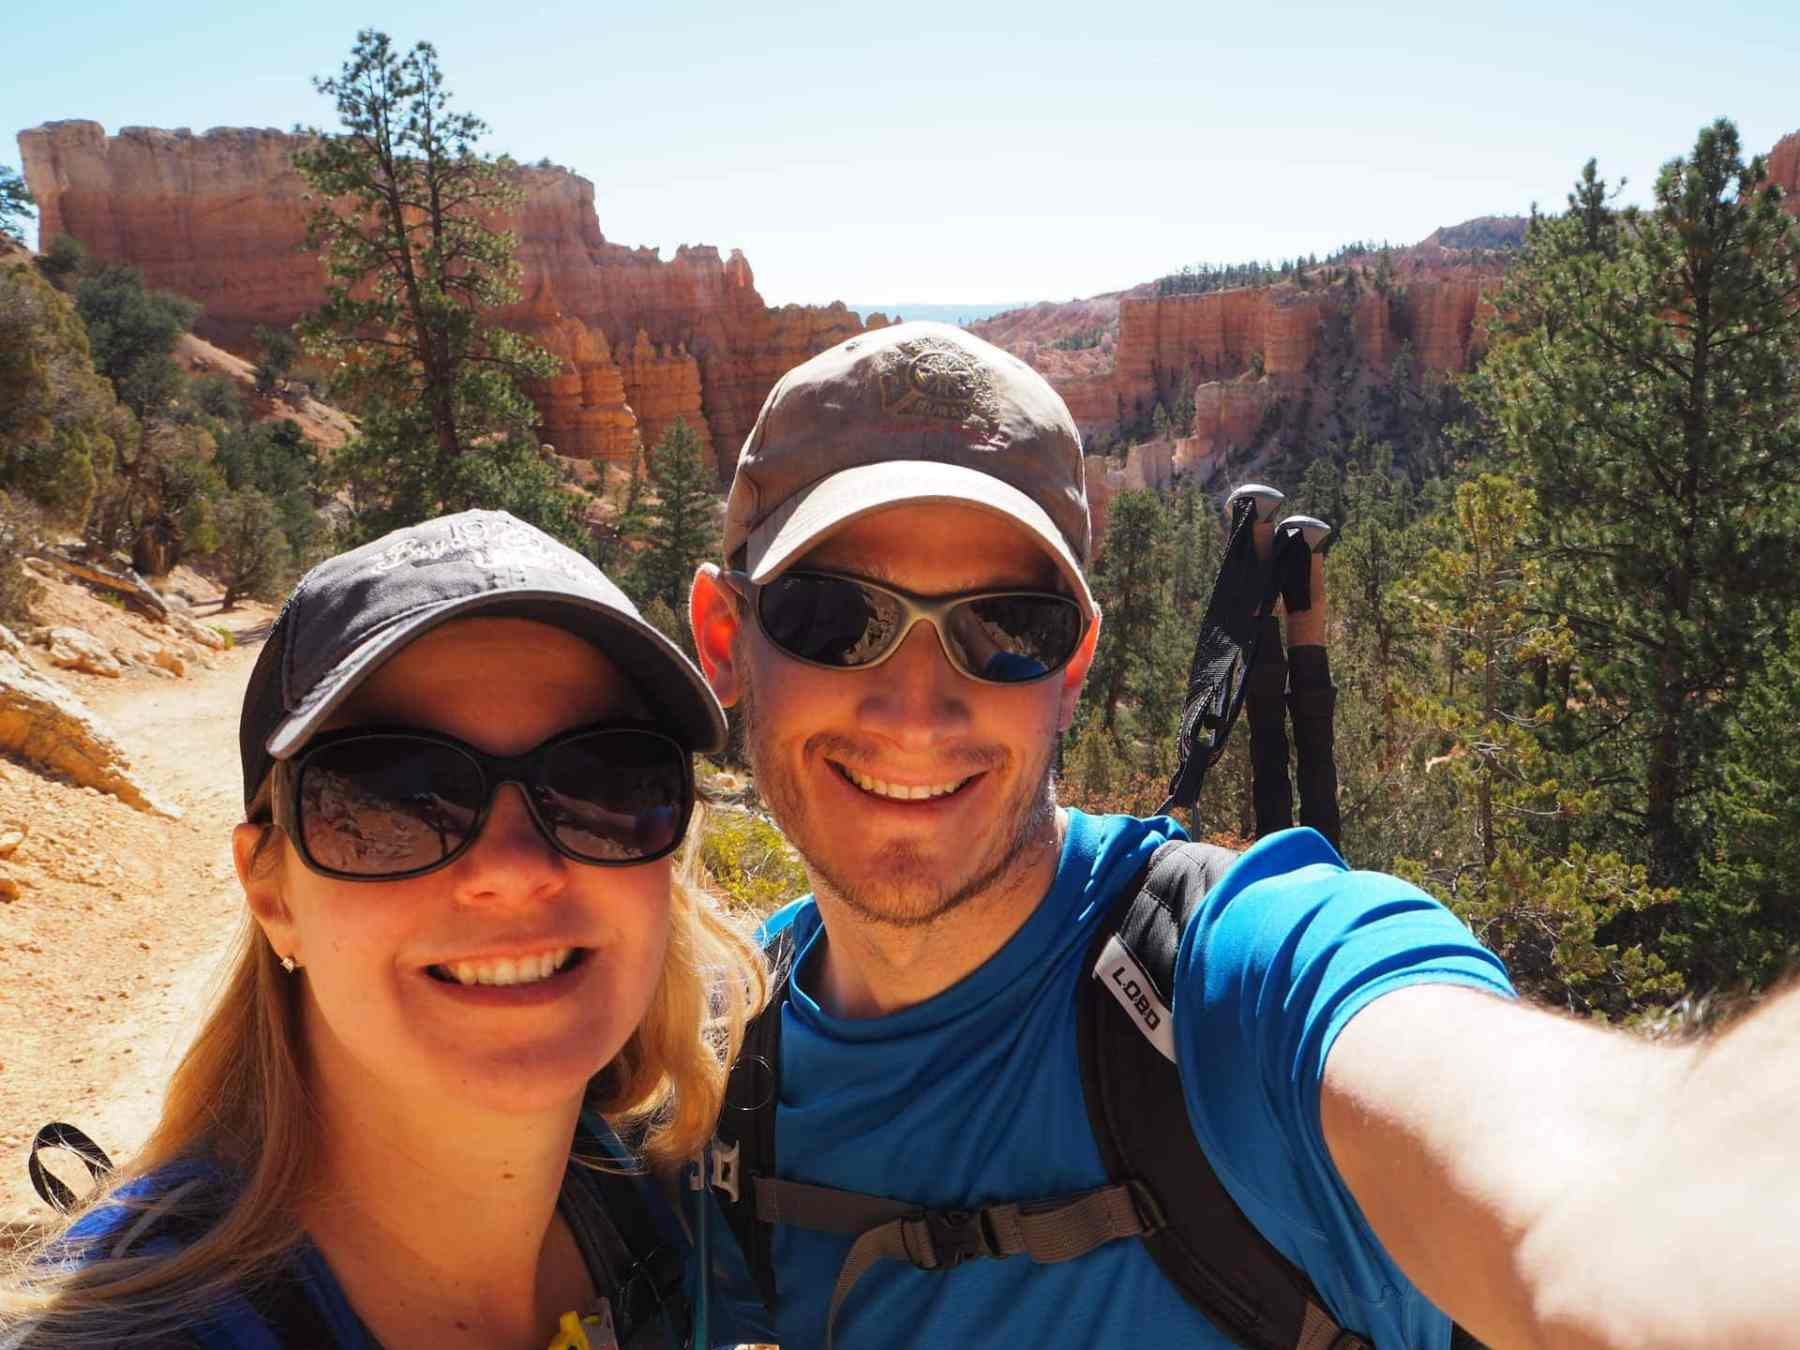 all smiles at Bryce Canyon National Park